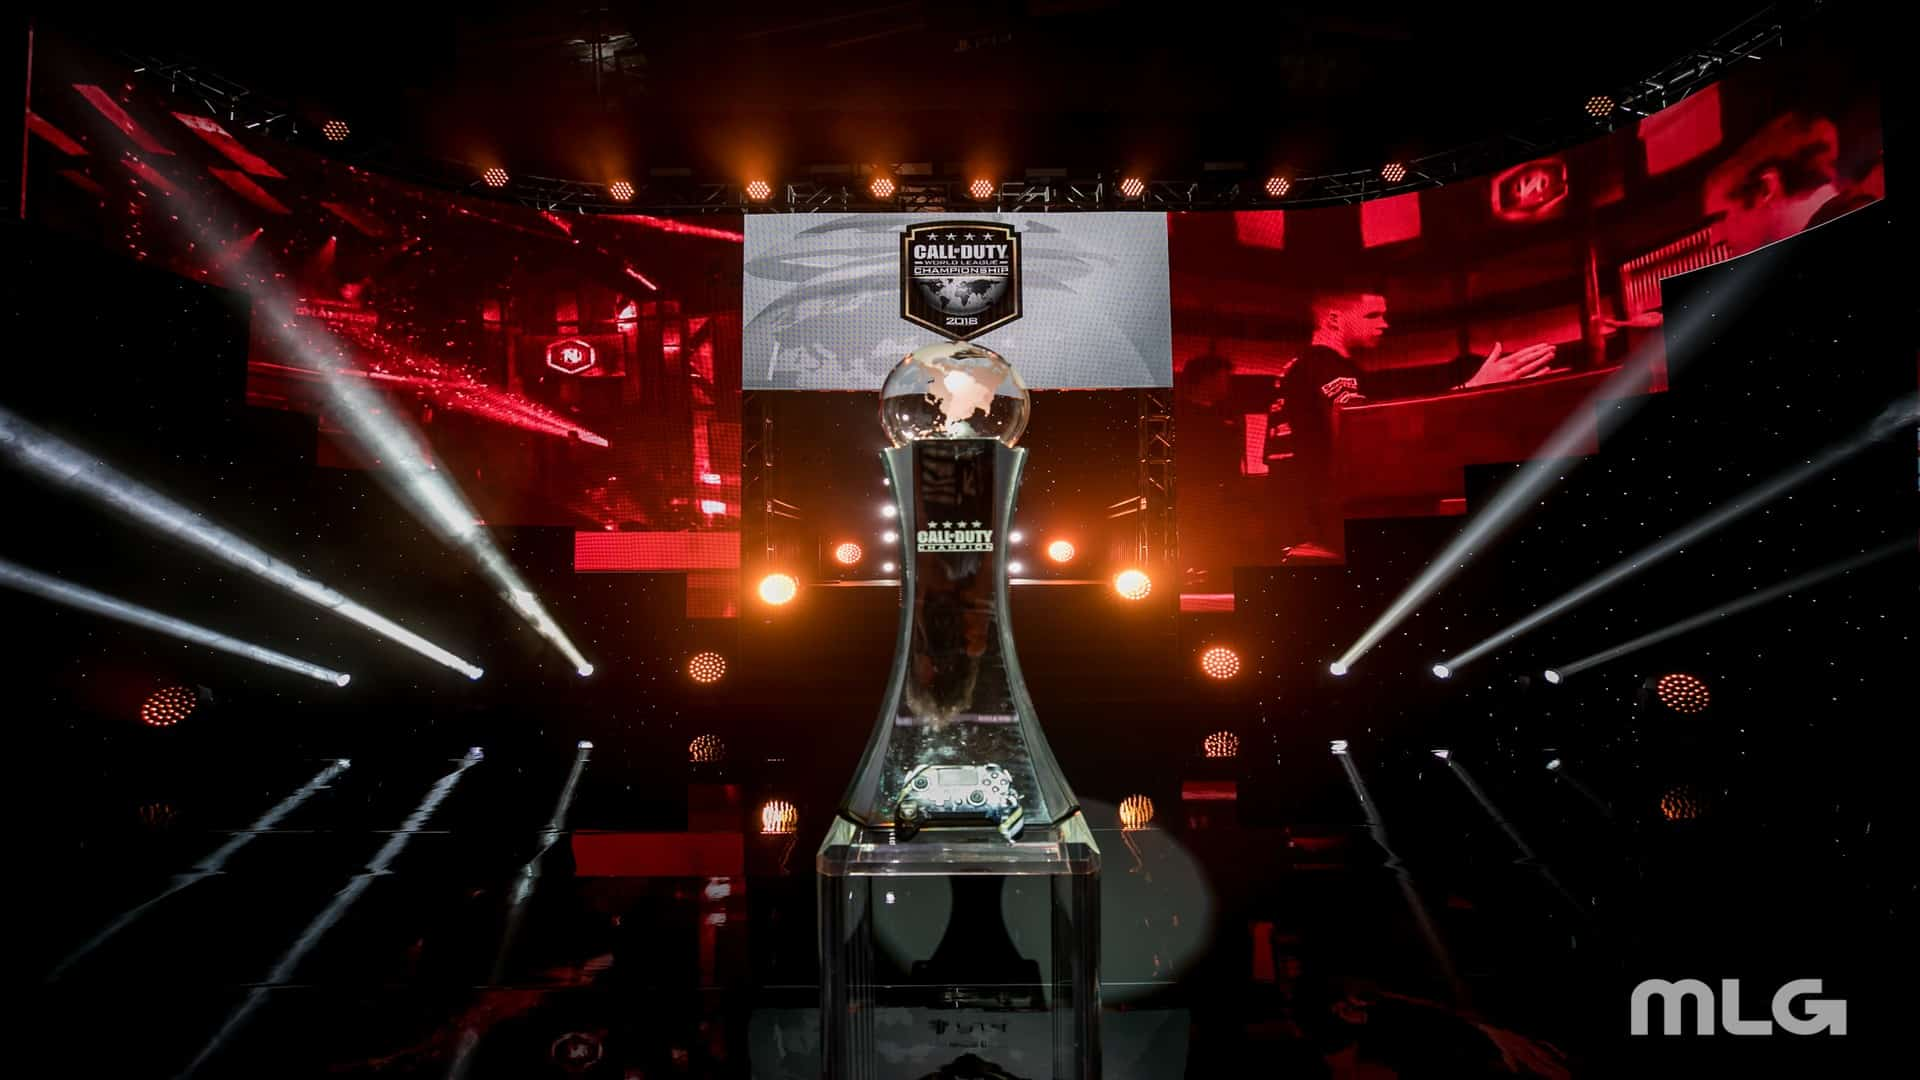 2019 Call Of Duty World League Championship, Presented By Playstation 4, Takes Over Los Angeles